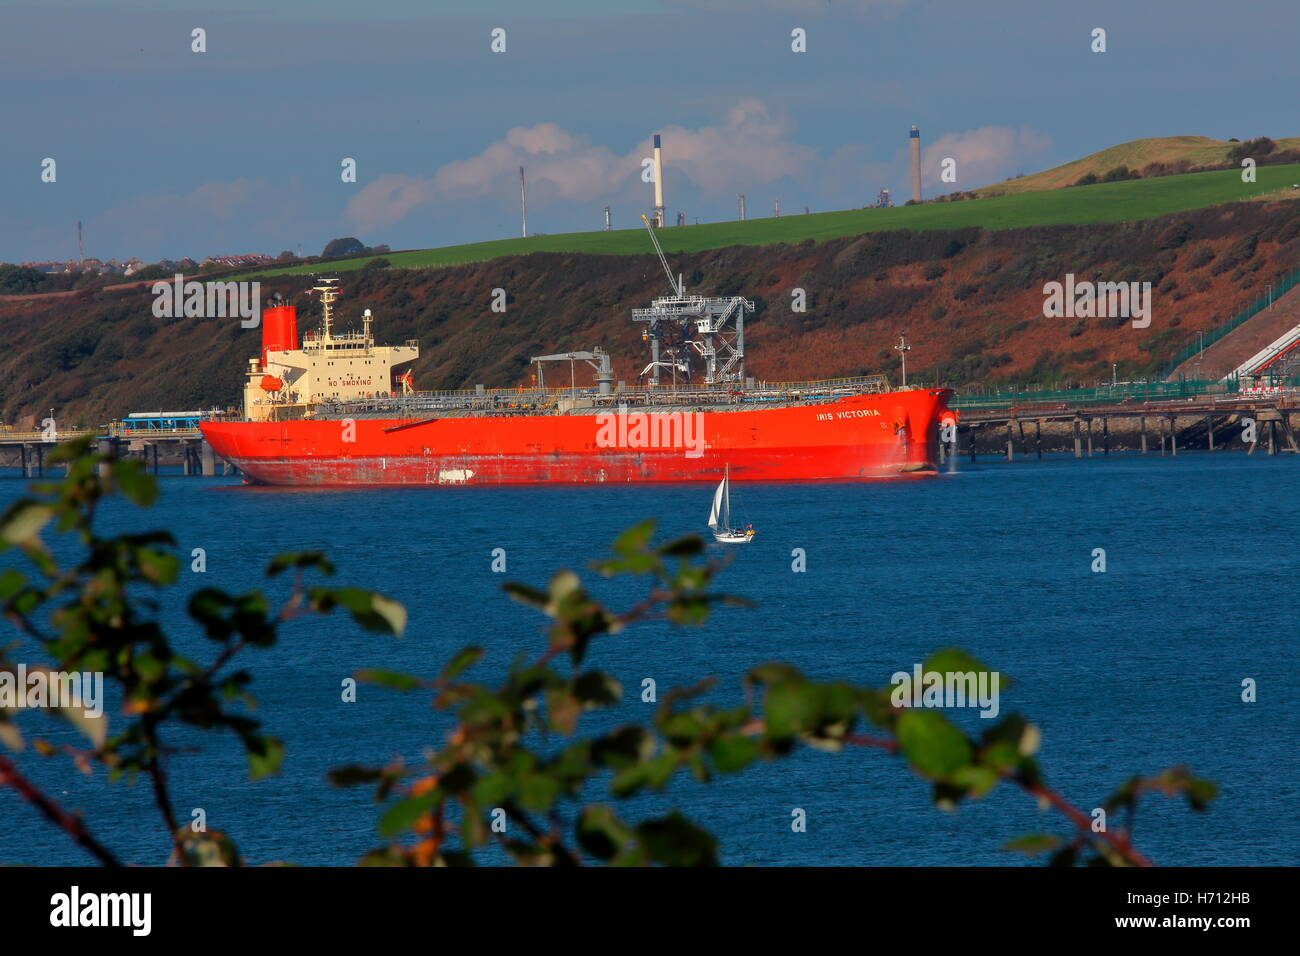 The 'Iris Victoria' berthed at an oil jetty with crew seen against the hill which the oil is pumped up to - Stock Image